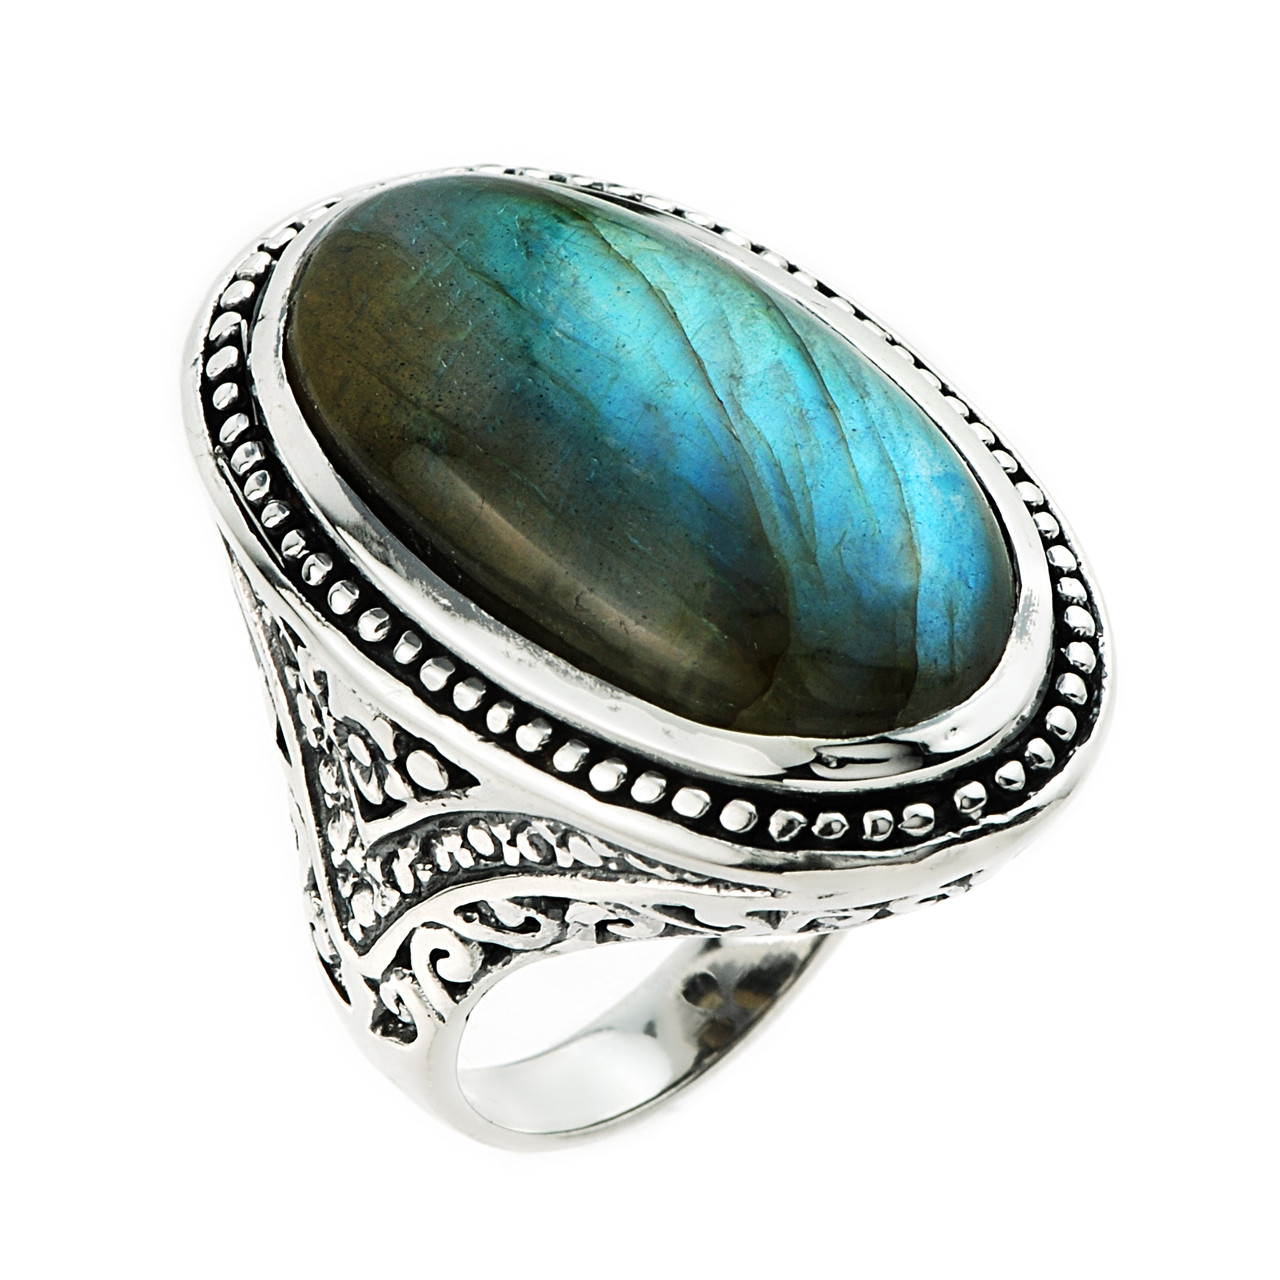 Gemstones For Rings: 925 Sterling Silver Unique Oval 22.80ctw Labradorite